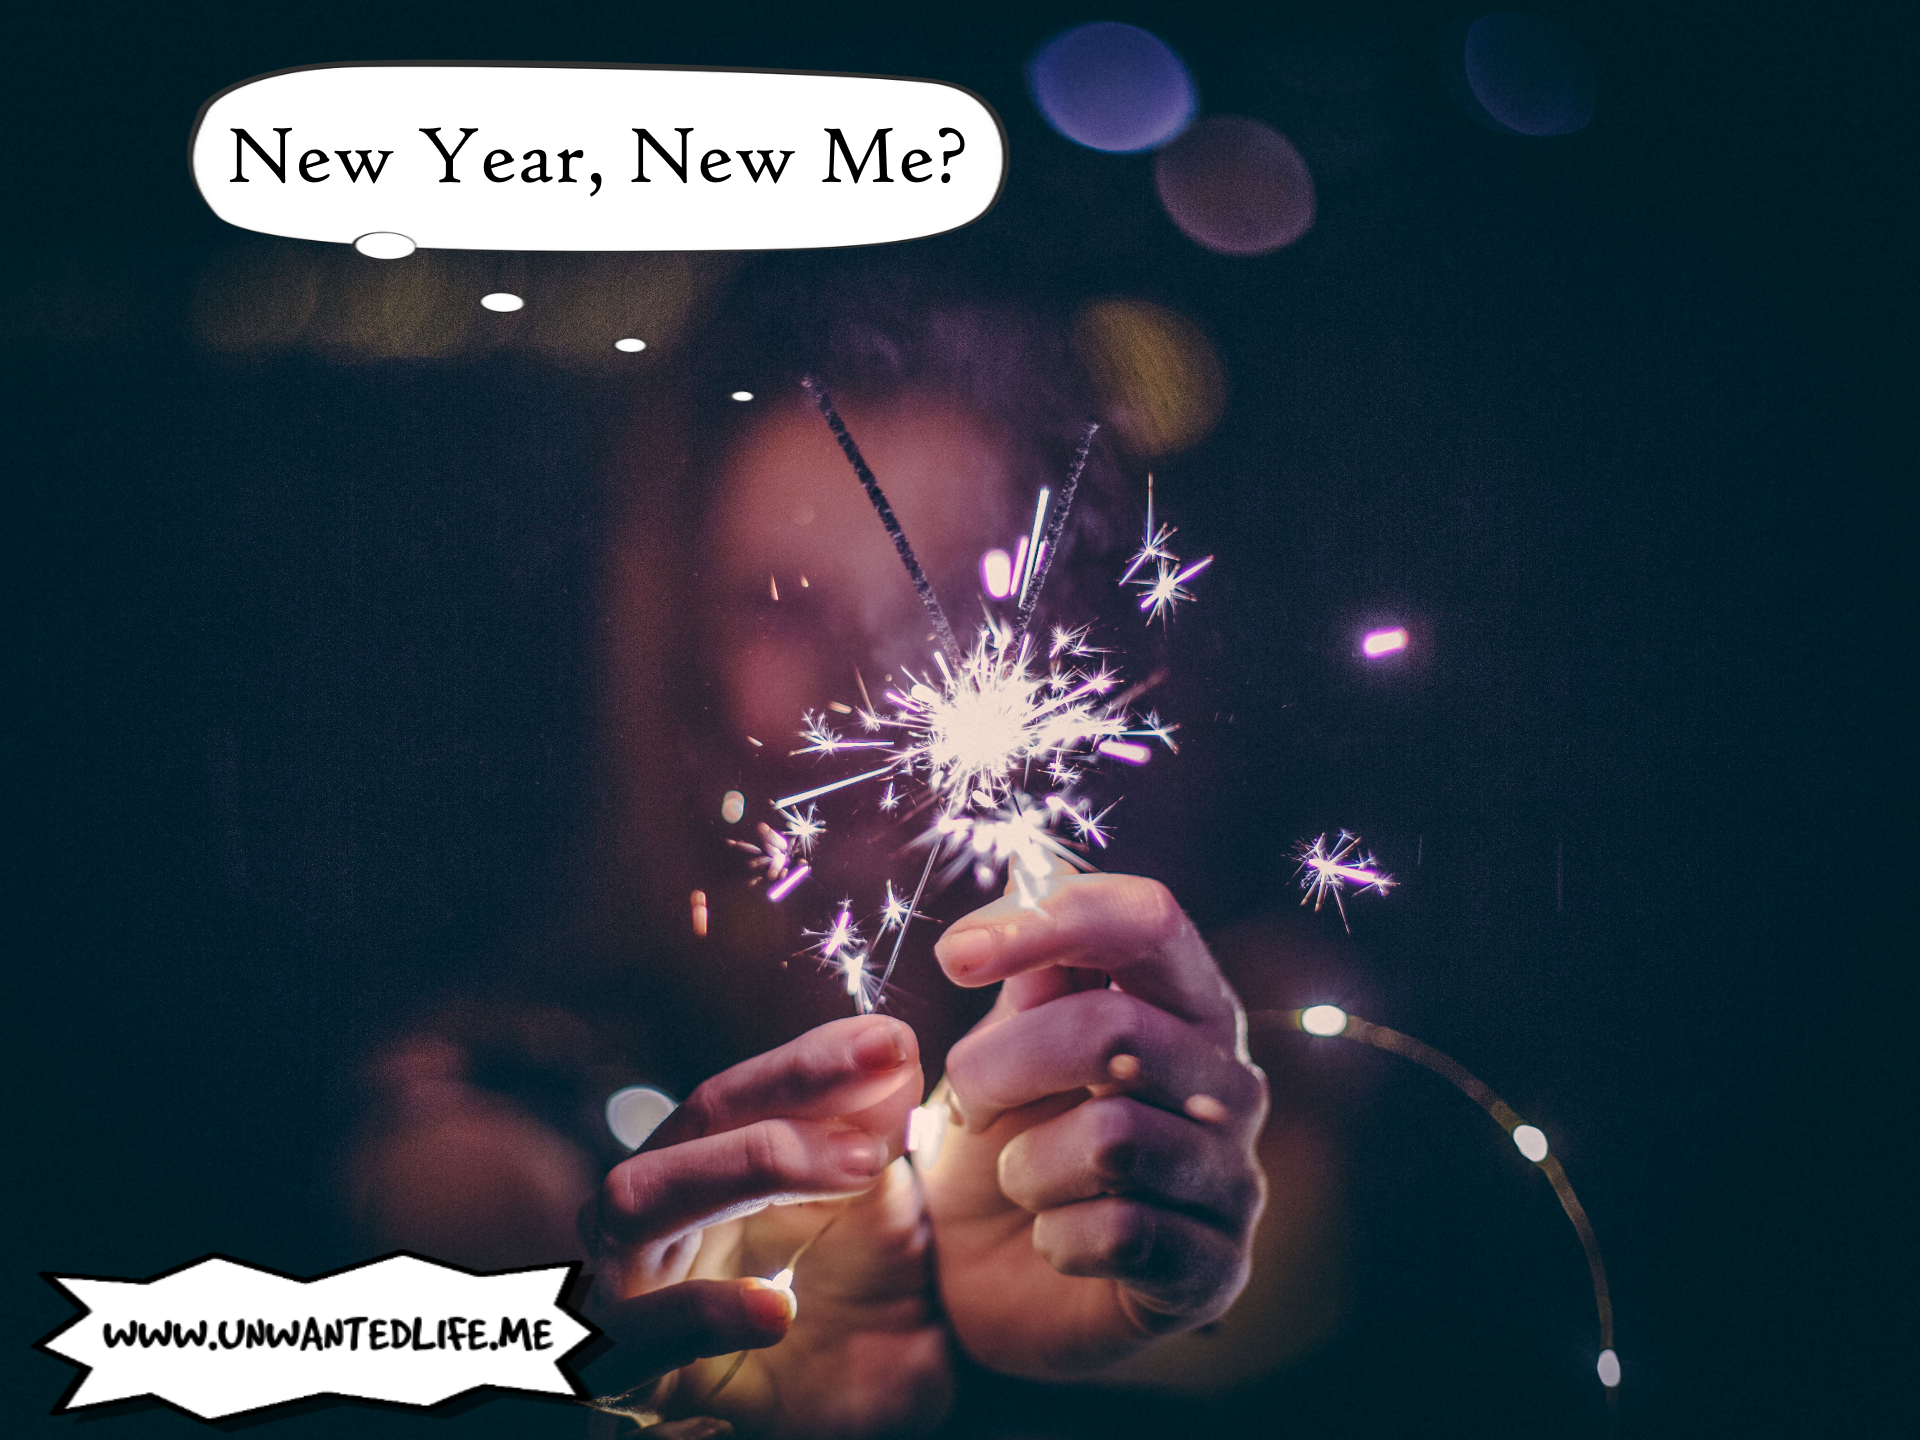 A woman out of focus holding two sparklers in front of the camera with a thought bubble over her head that says - New Year, New Me?